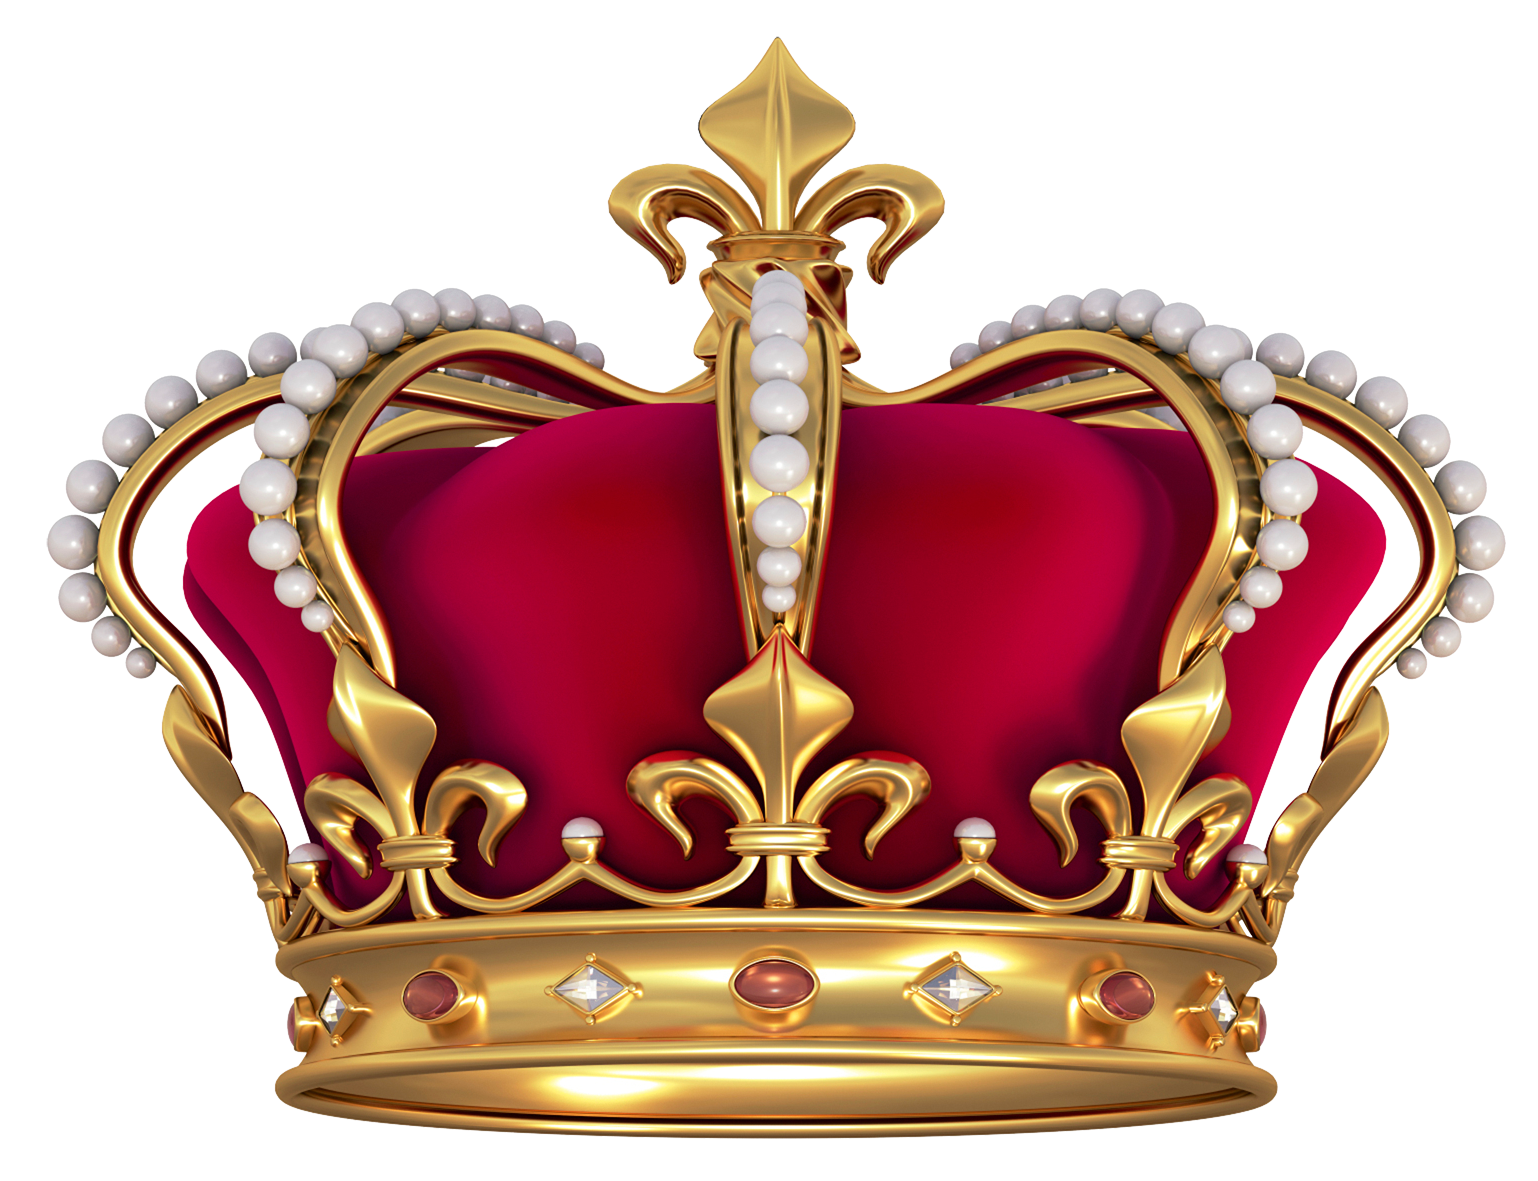 Medieval pink crown clipart clipart freeuse library Red Gold Crown with Pearls PNG Clipart Picture | Crafting - Regal ... clipart freeuse library